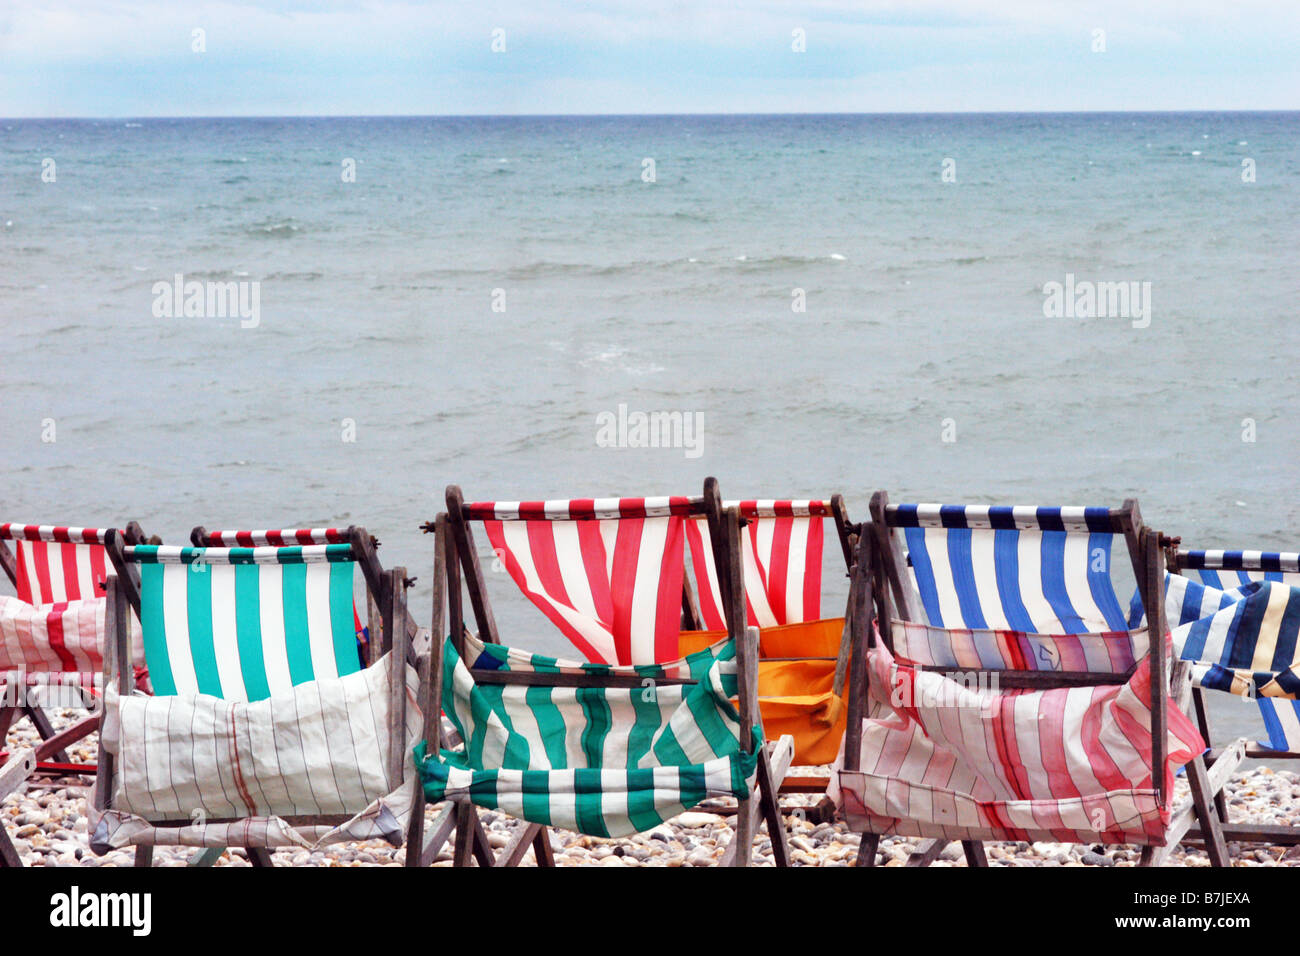 Battered deckchairs on a deserted beach, May Day Bank holiday Dorset UK - Stock Image